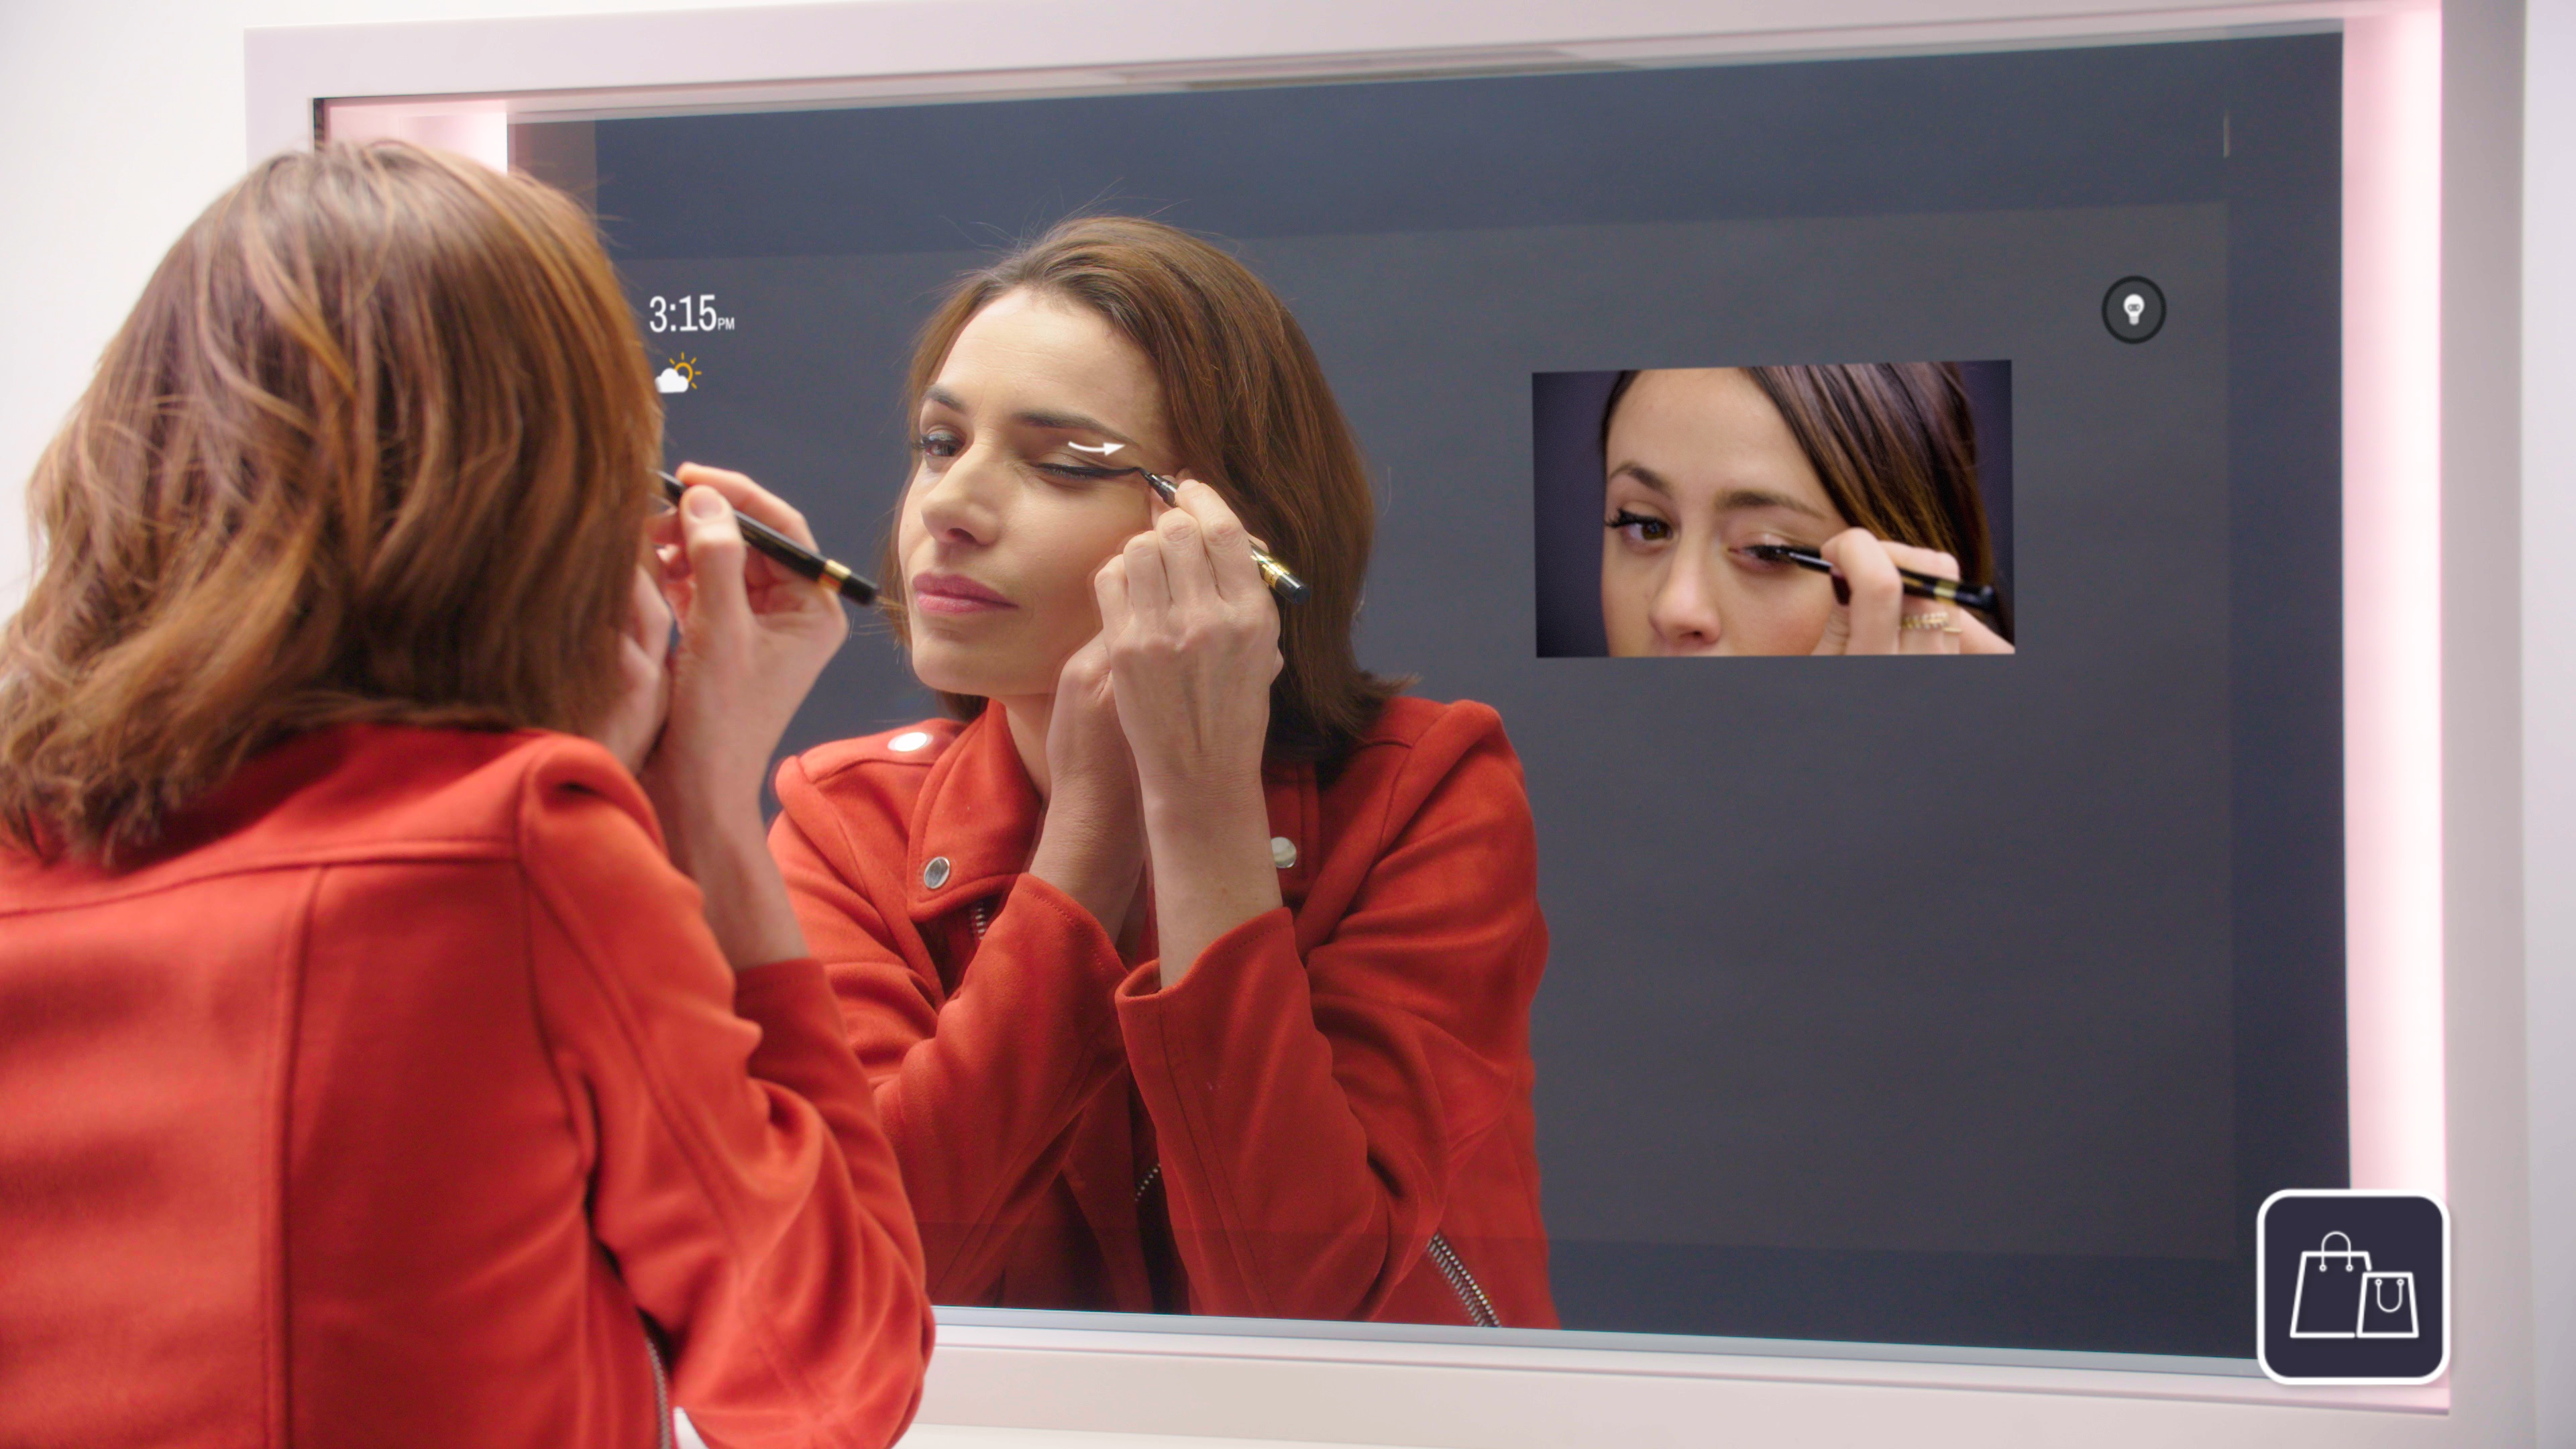 Your mirror may soon be able to decide the clothes you wear